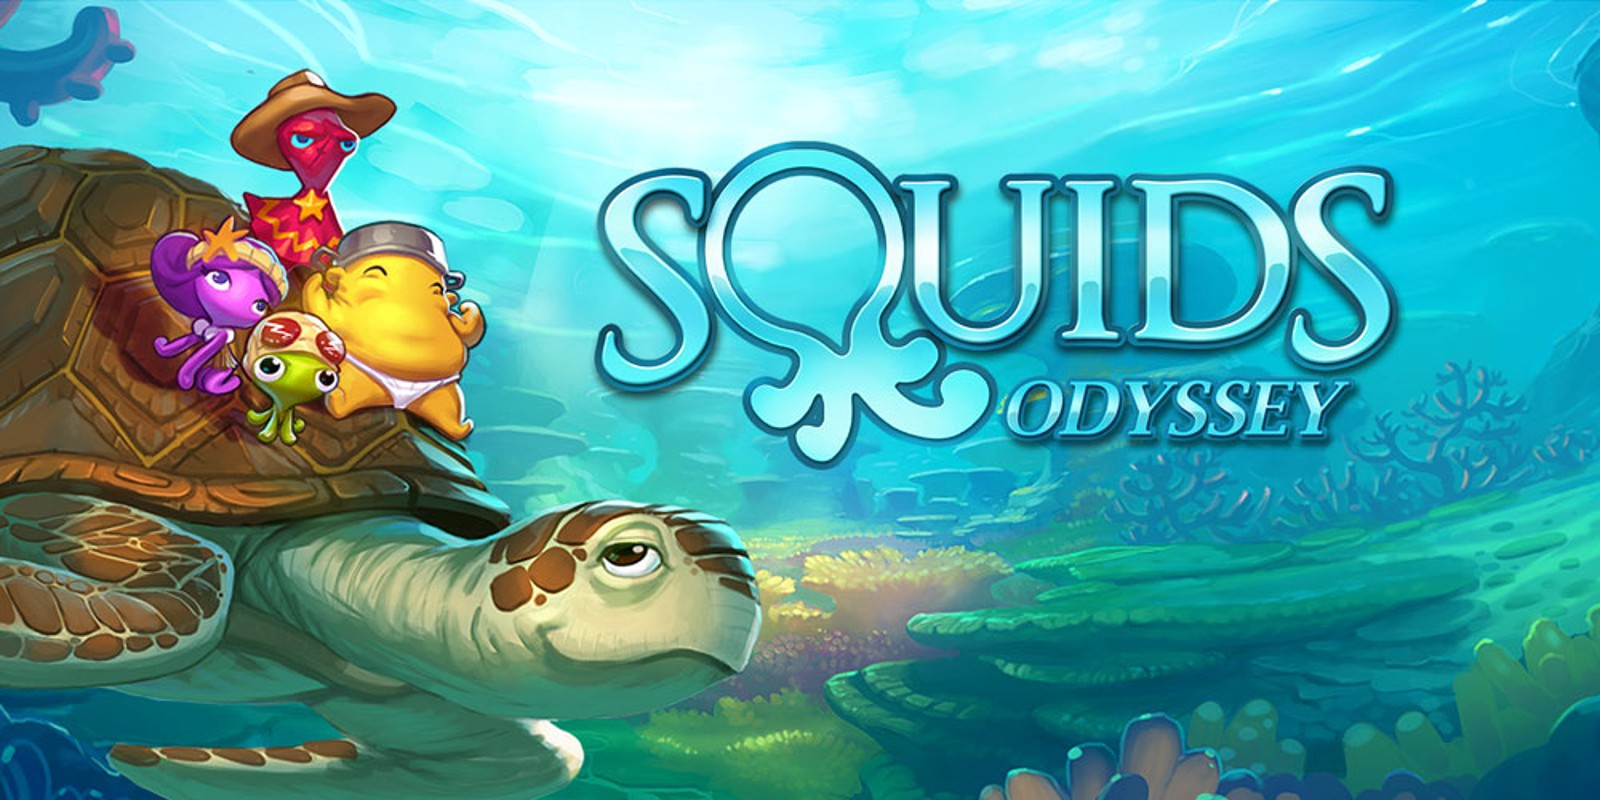 squids android